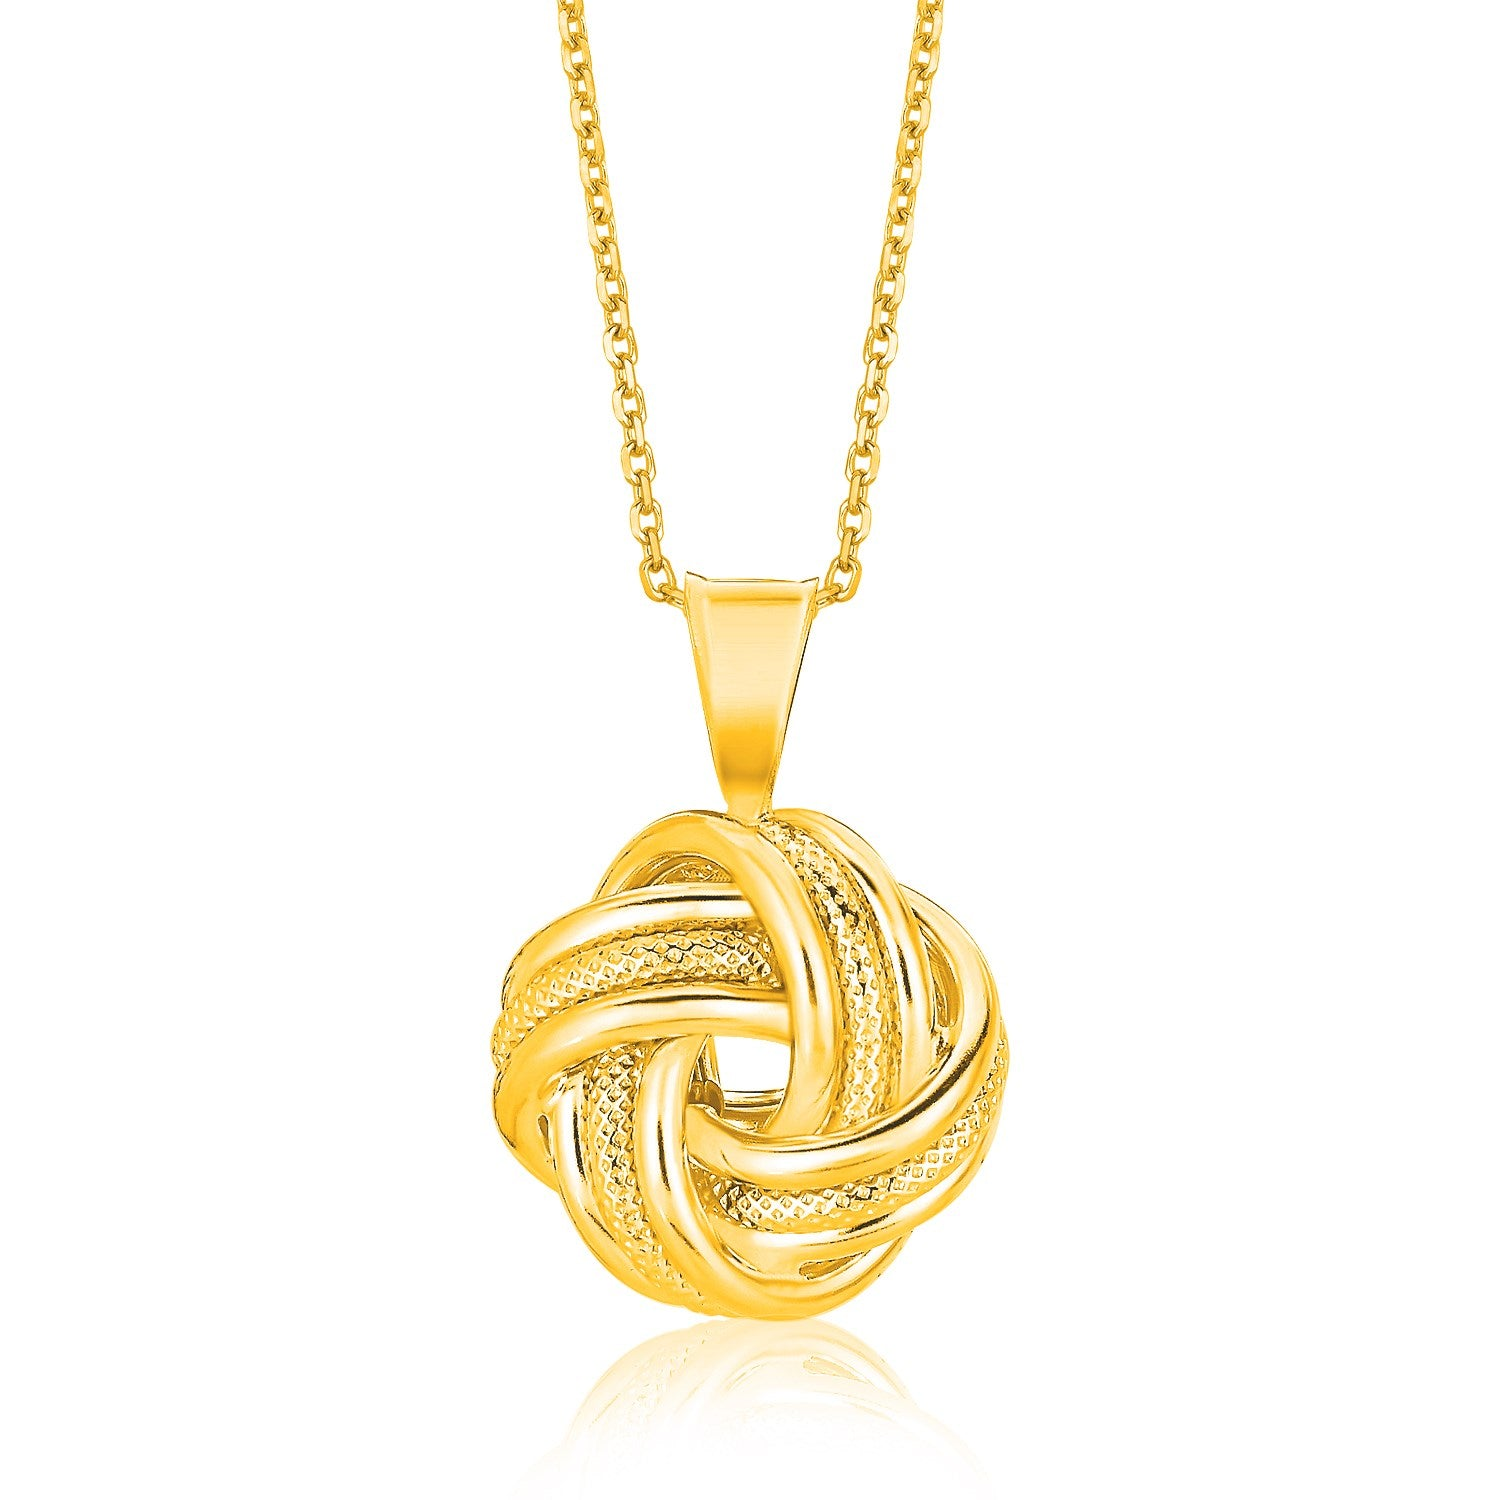 14K Yellow Gold Polished Love Knot Pendant with Ridges